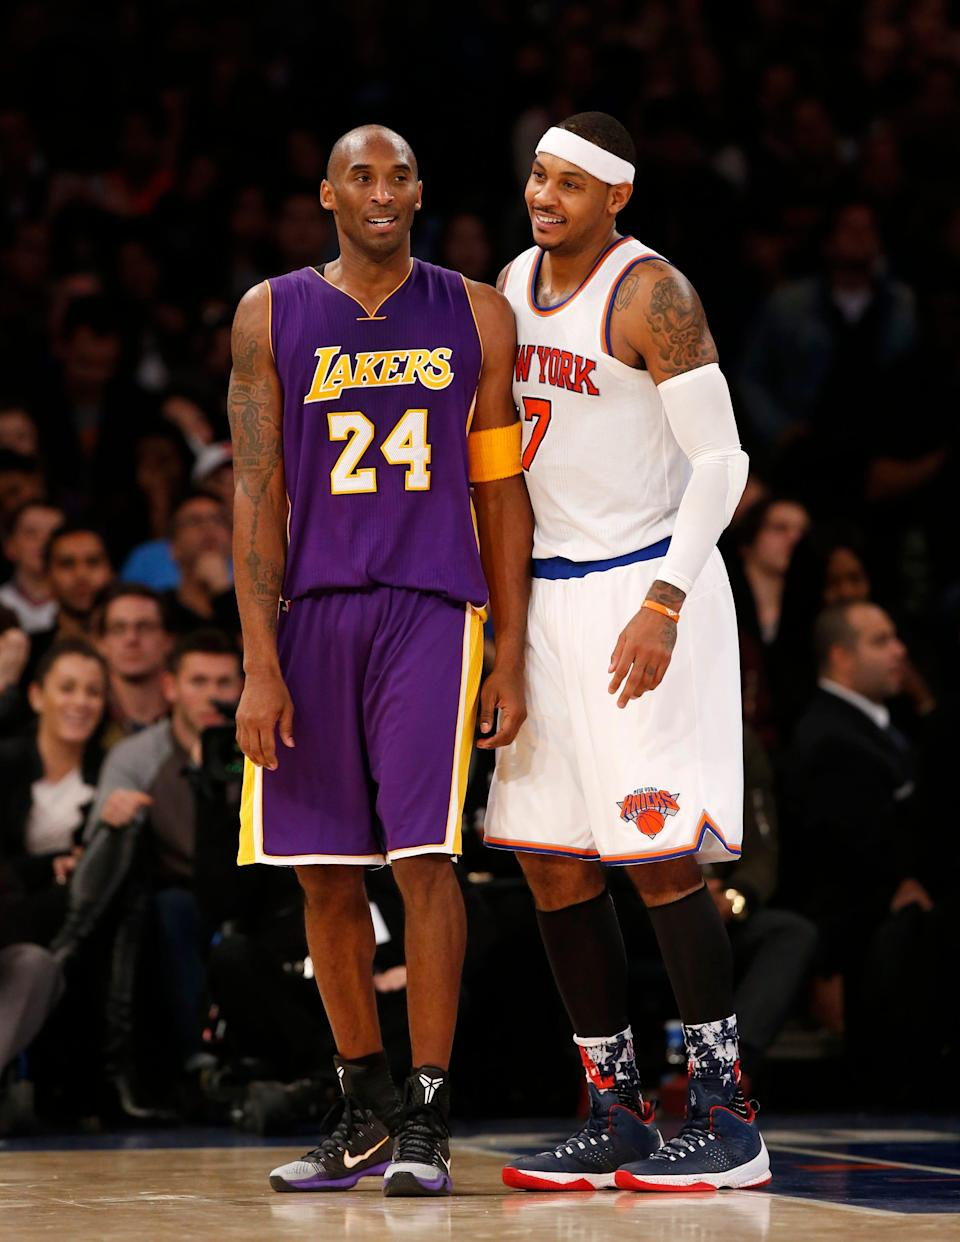 Los Angeles Lakers forward Kobe Bryant (24) chats with New York Knicks forward Carmelo Anthony (7) during a lull in play in the second half of an NBA basketball game at Madison Square Garden in New York, Sunday, Nov. 8, 2015.